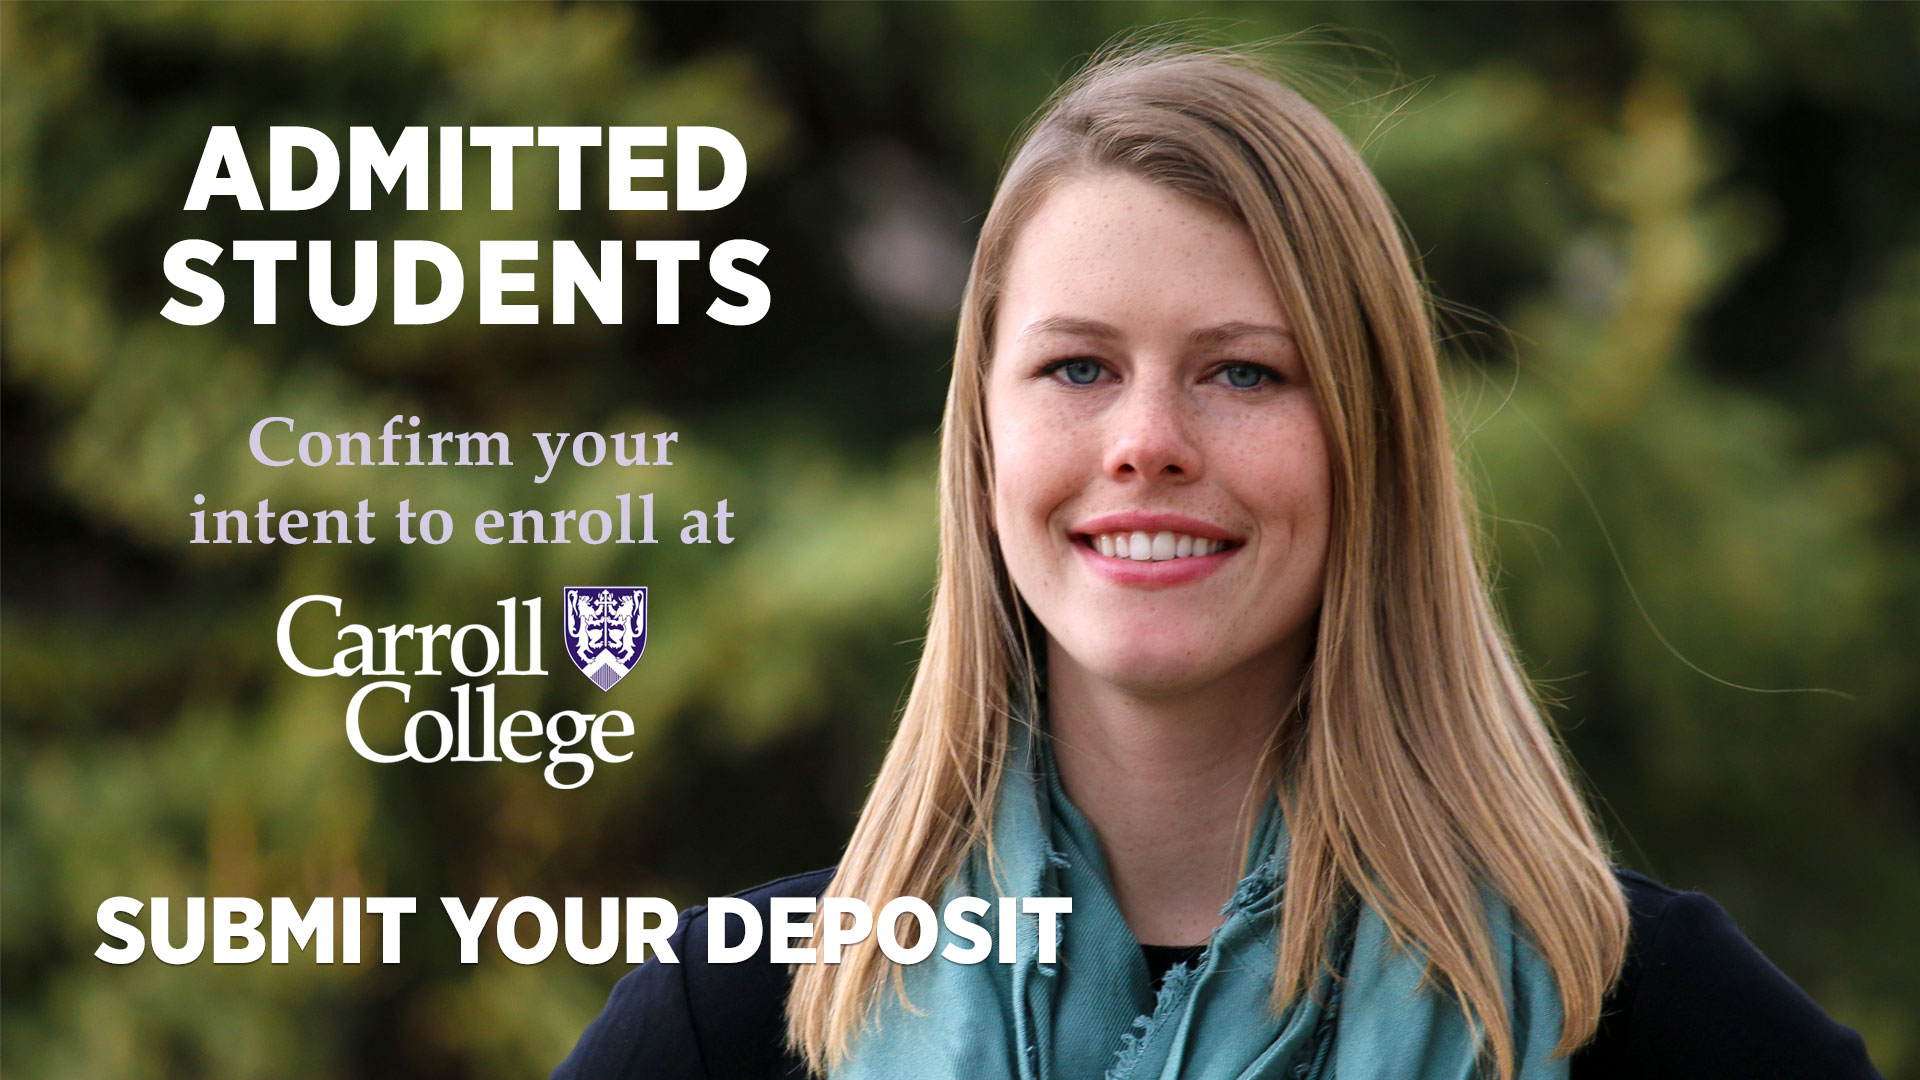 Submit your Enrollment Deposit Graphic featuring image of Carroll Student Close-up